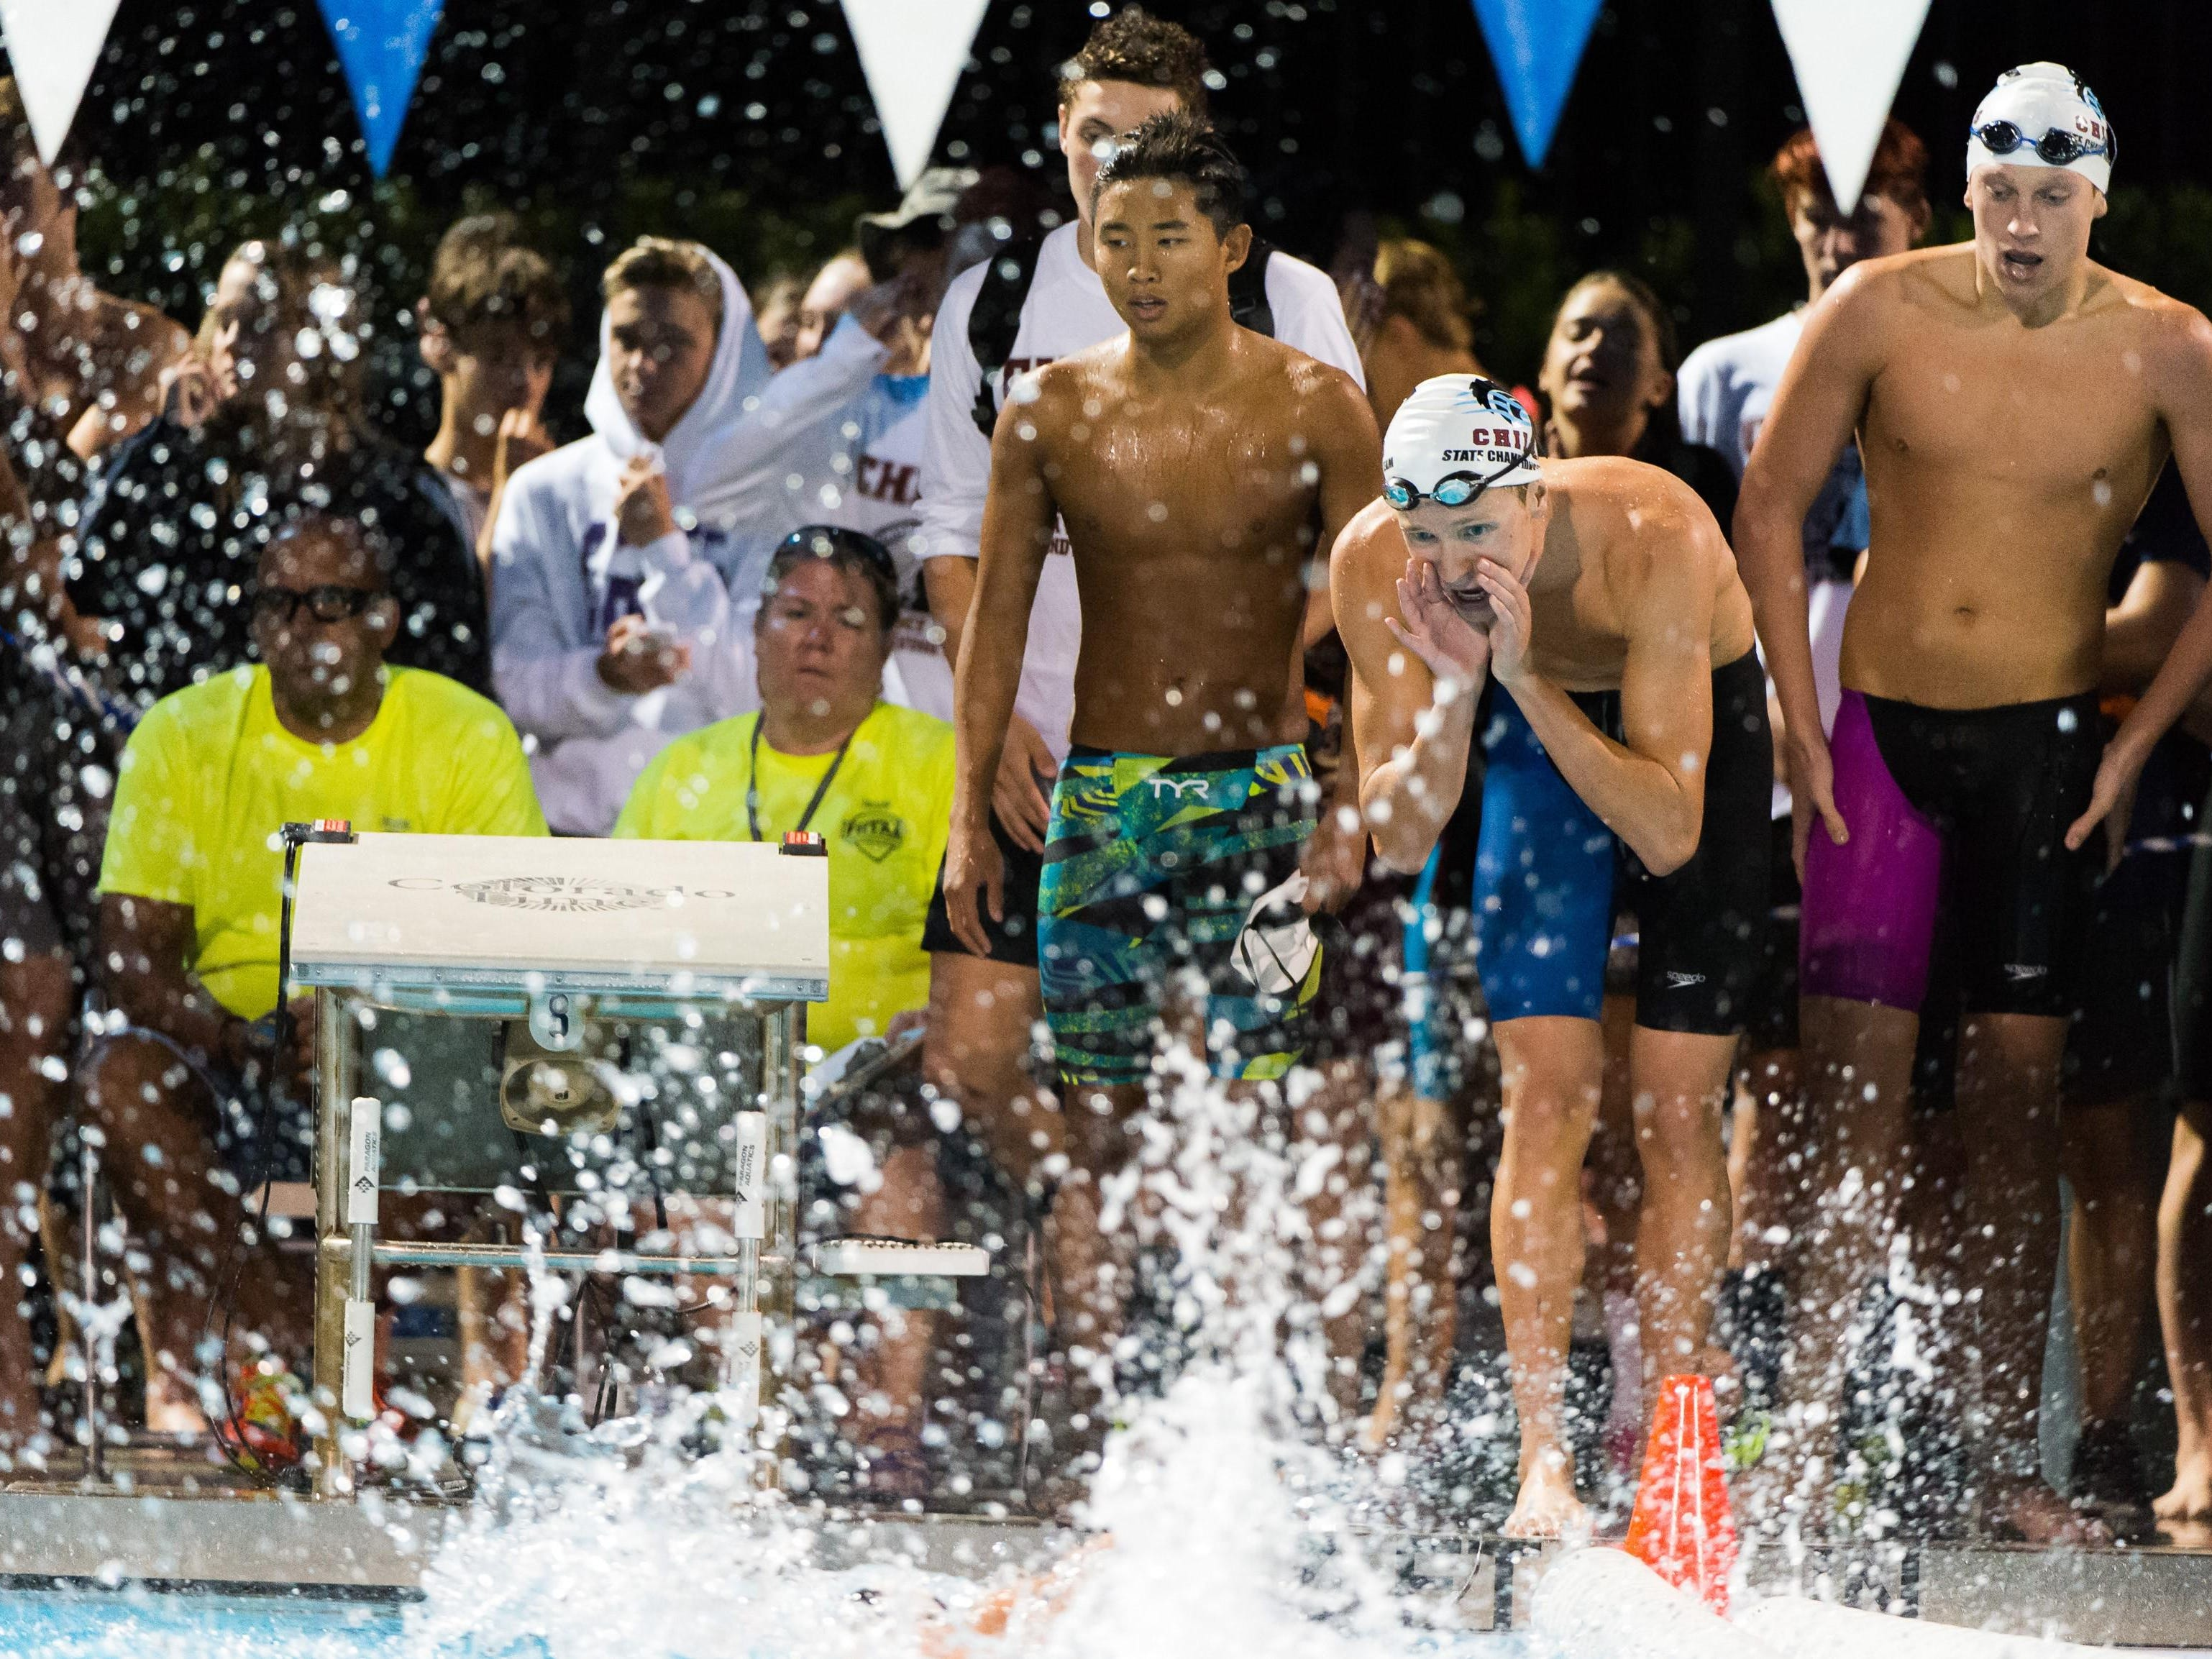 Chiles sophomore John Yambor-Maul cheers on teammates during a relay. The Timberwolves' boys team finished fifth as a team during the state finals.